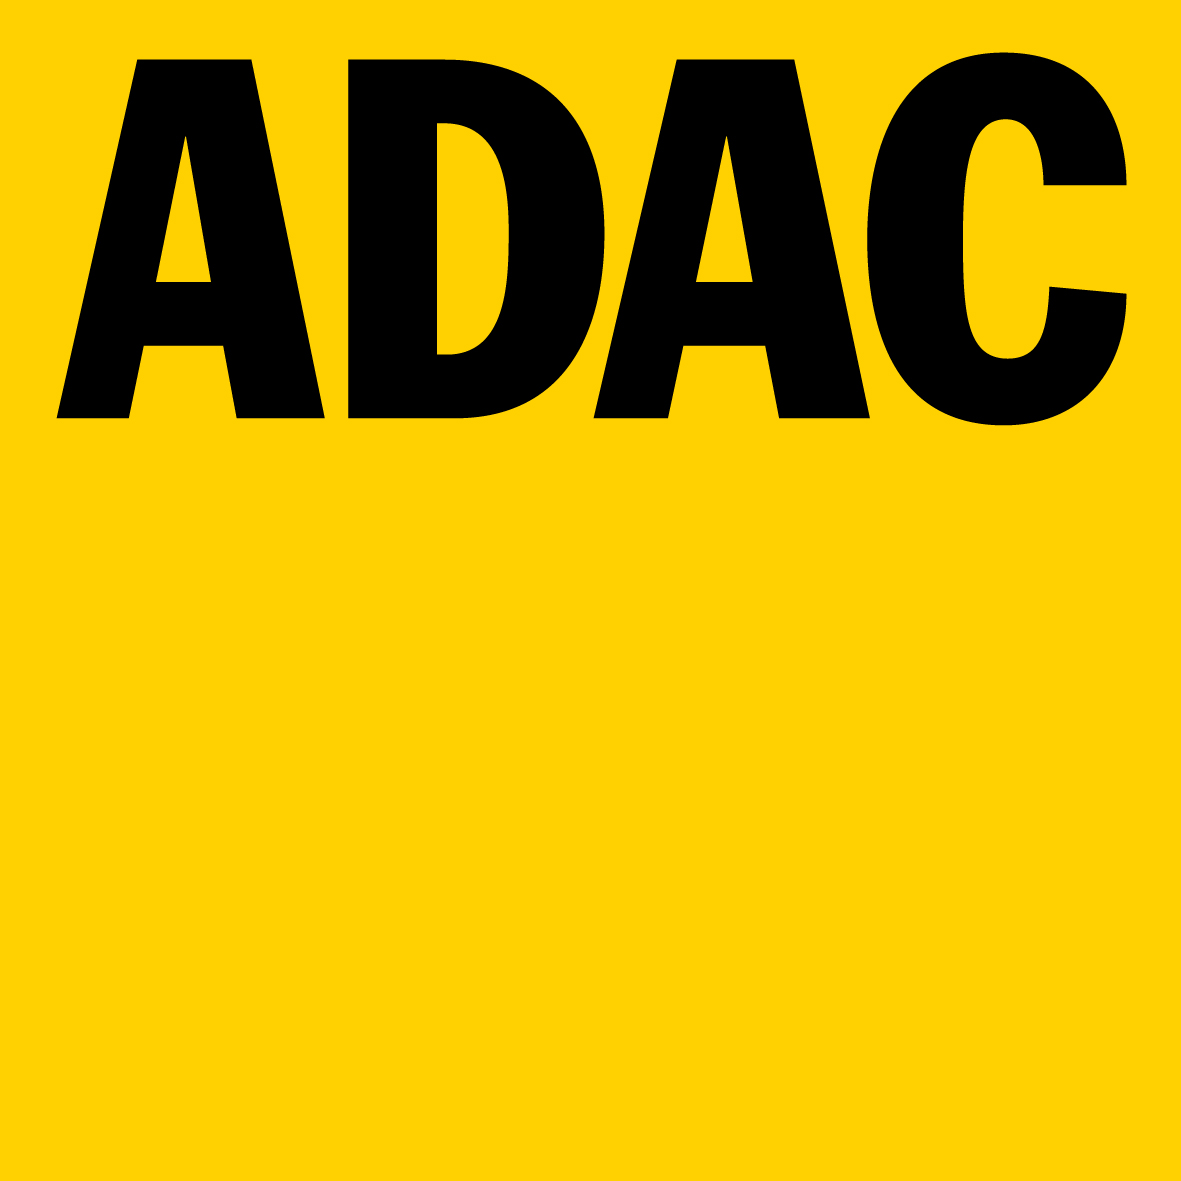 Members of ADAC raise complaints over rigged awards